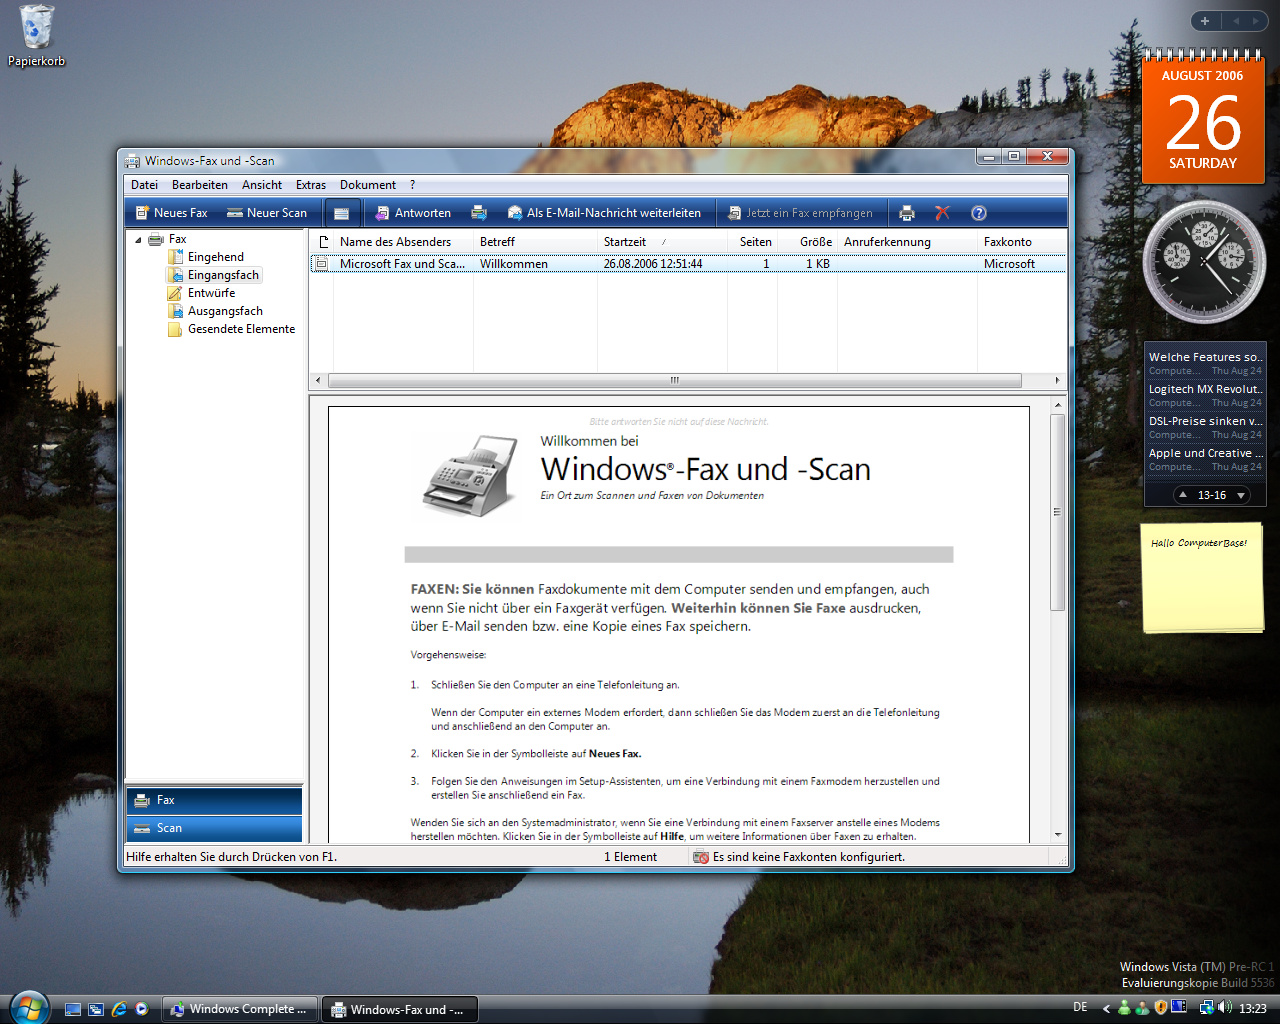 Windows Vista Build 5536 - Fax und Scan